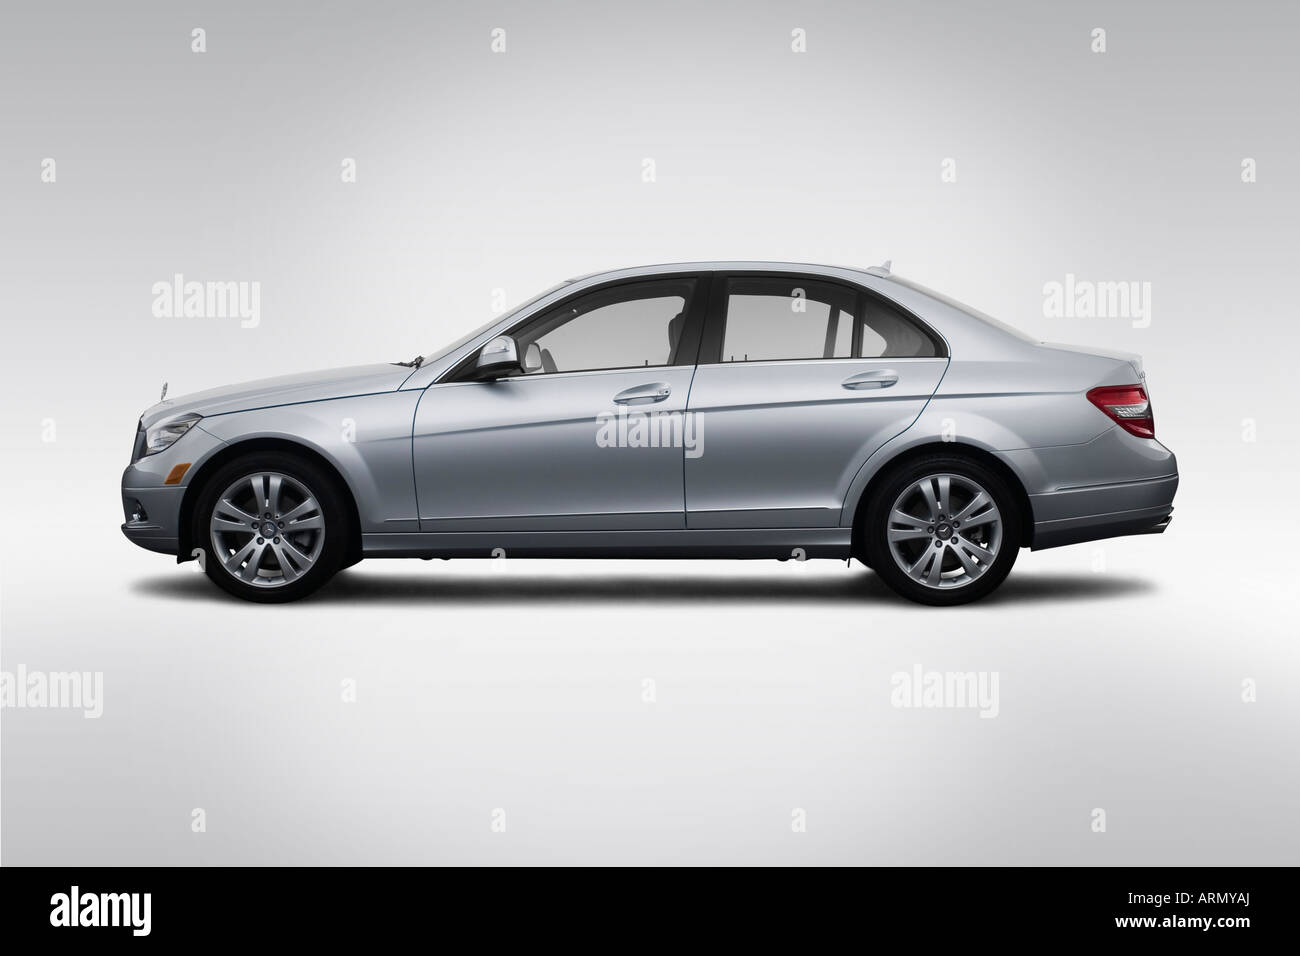 hight resolution of 2008 mercedes benz c class c300 in silver drivers side profile